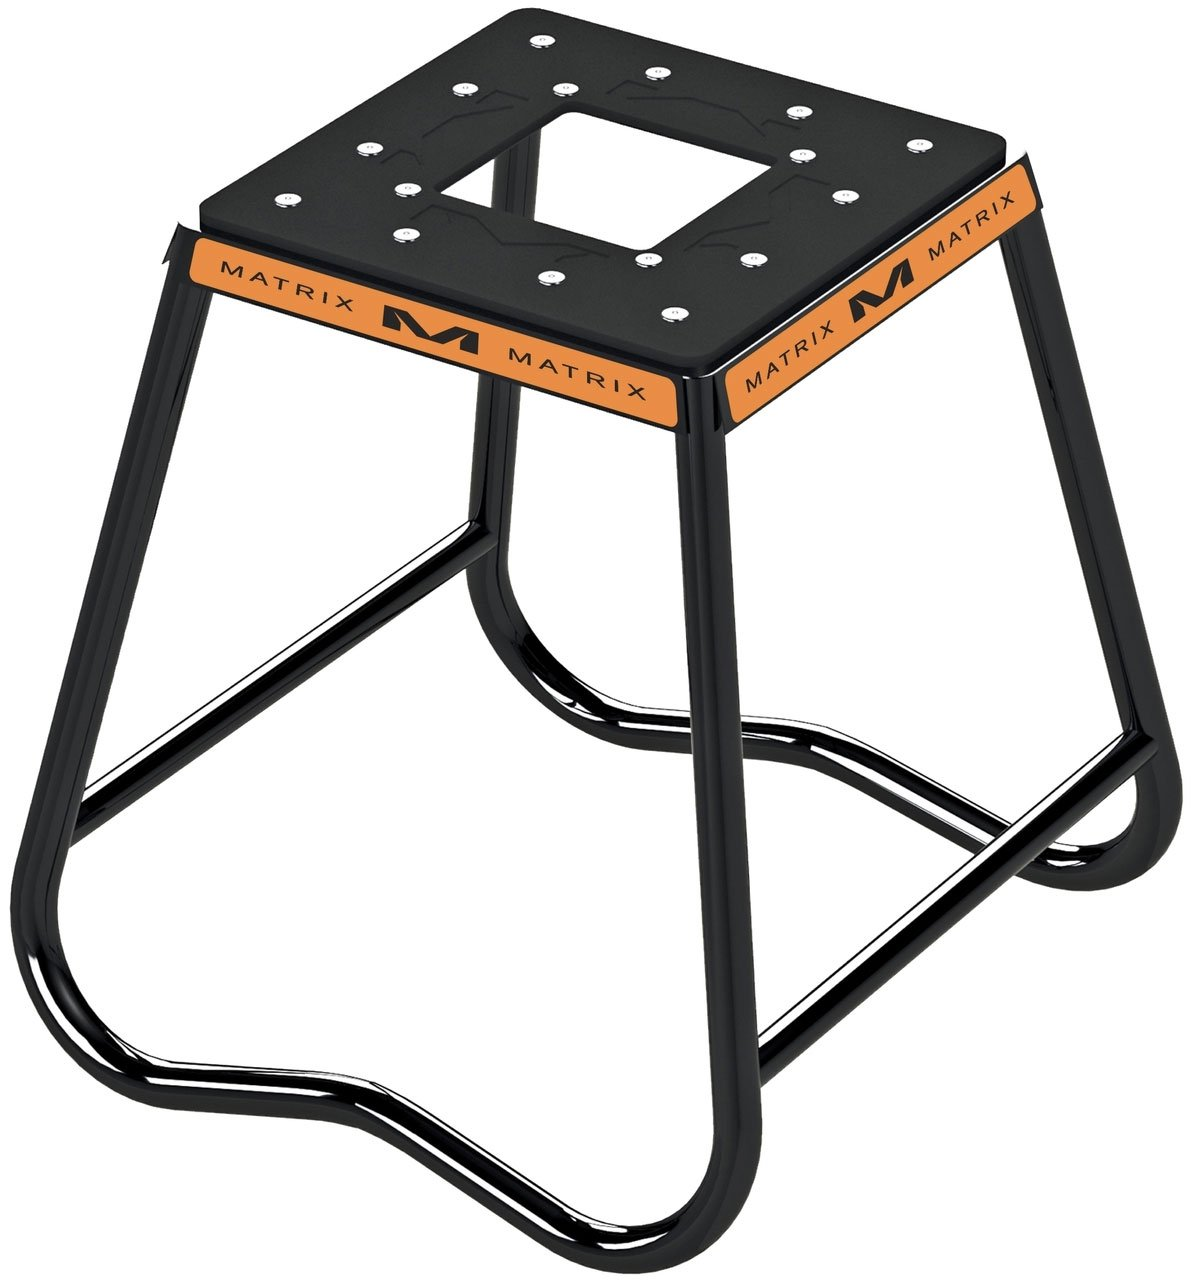 Matrix Concepts C1 Carbon Steel Stand, Orange